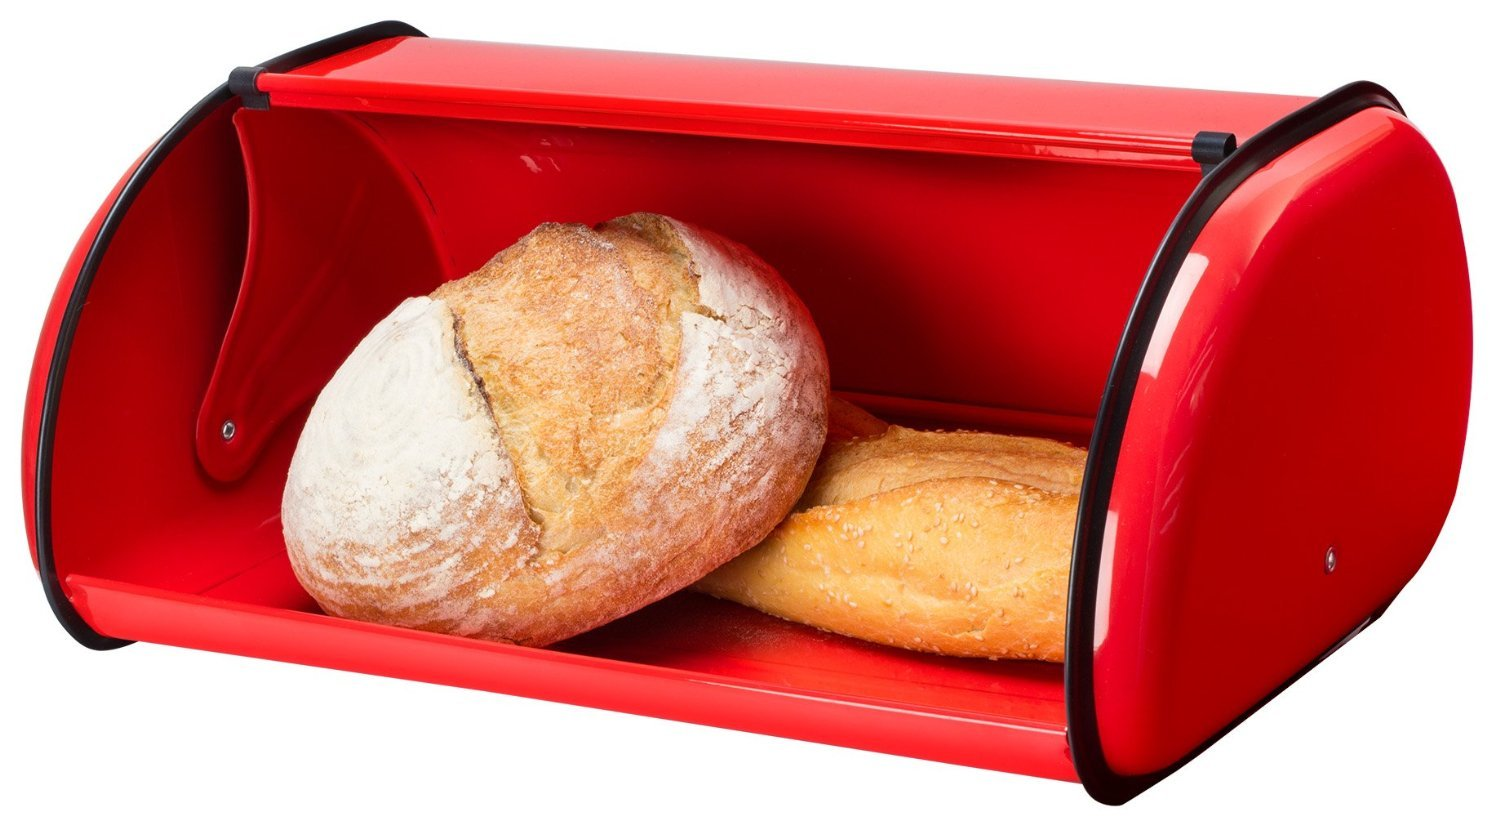 Greenco Stainless Steel Bread Bin Storage Box, Roll up Lid (Red) GRC0104-B